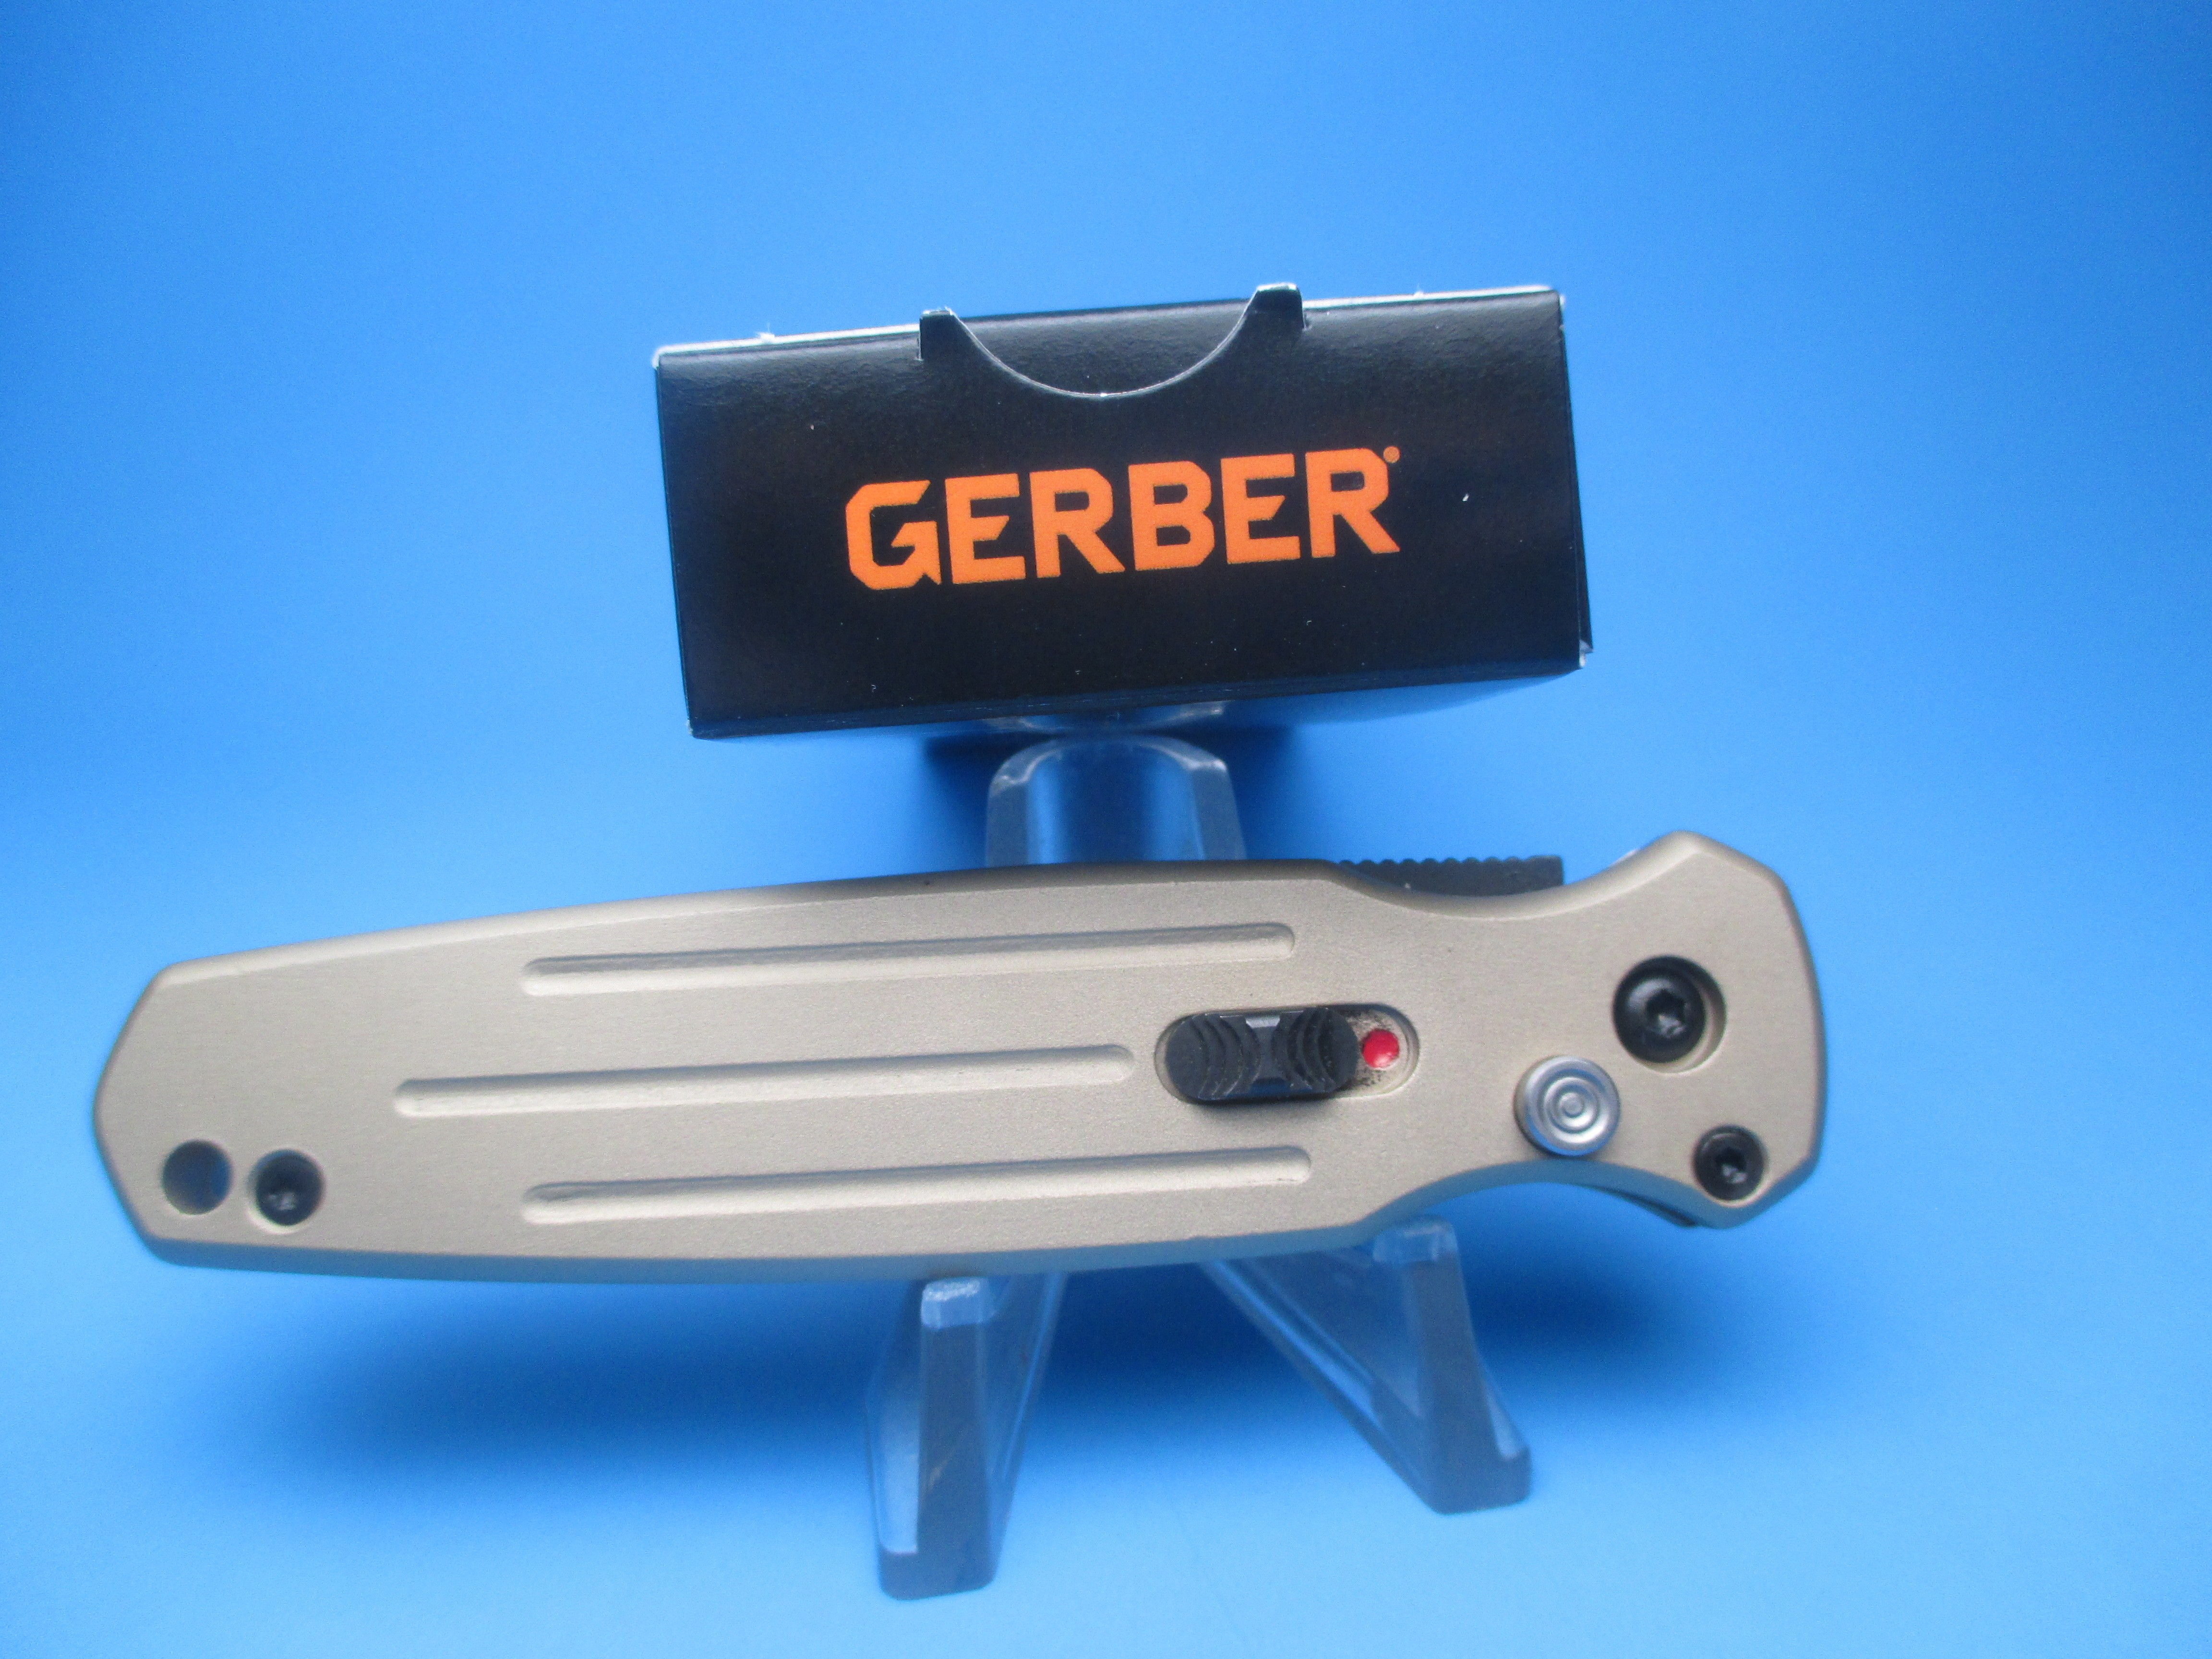 Gerber Mini Coyote Brown Covert Automatic Switchblade